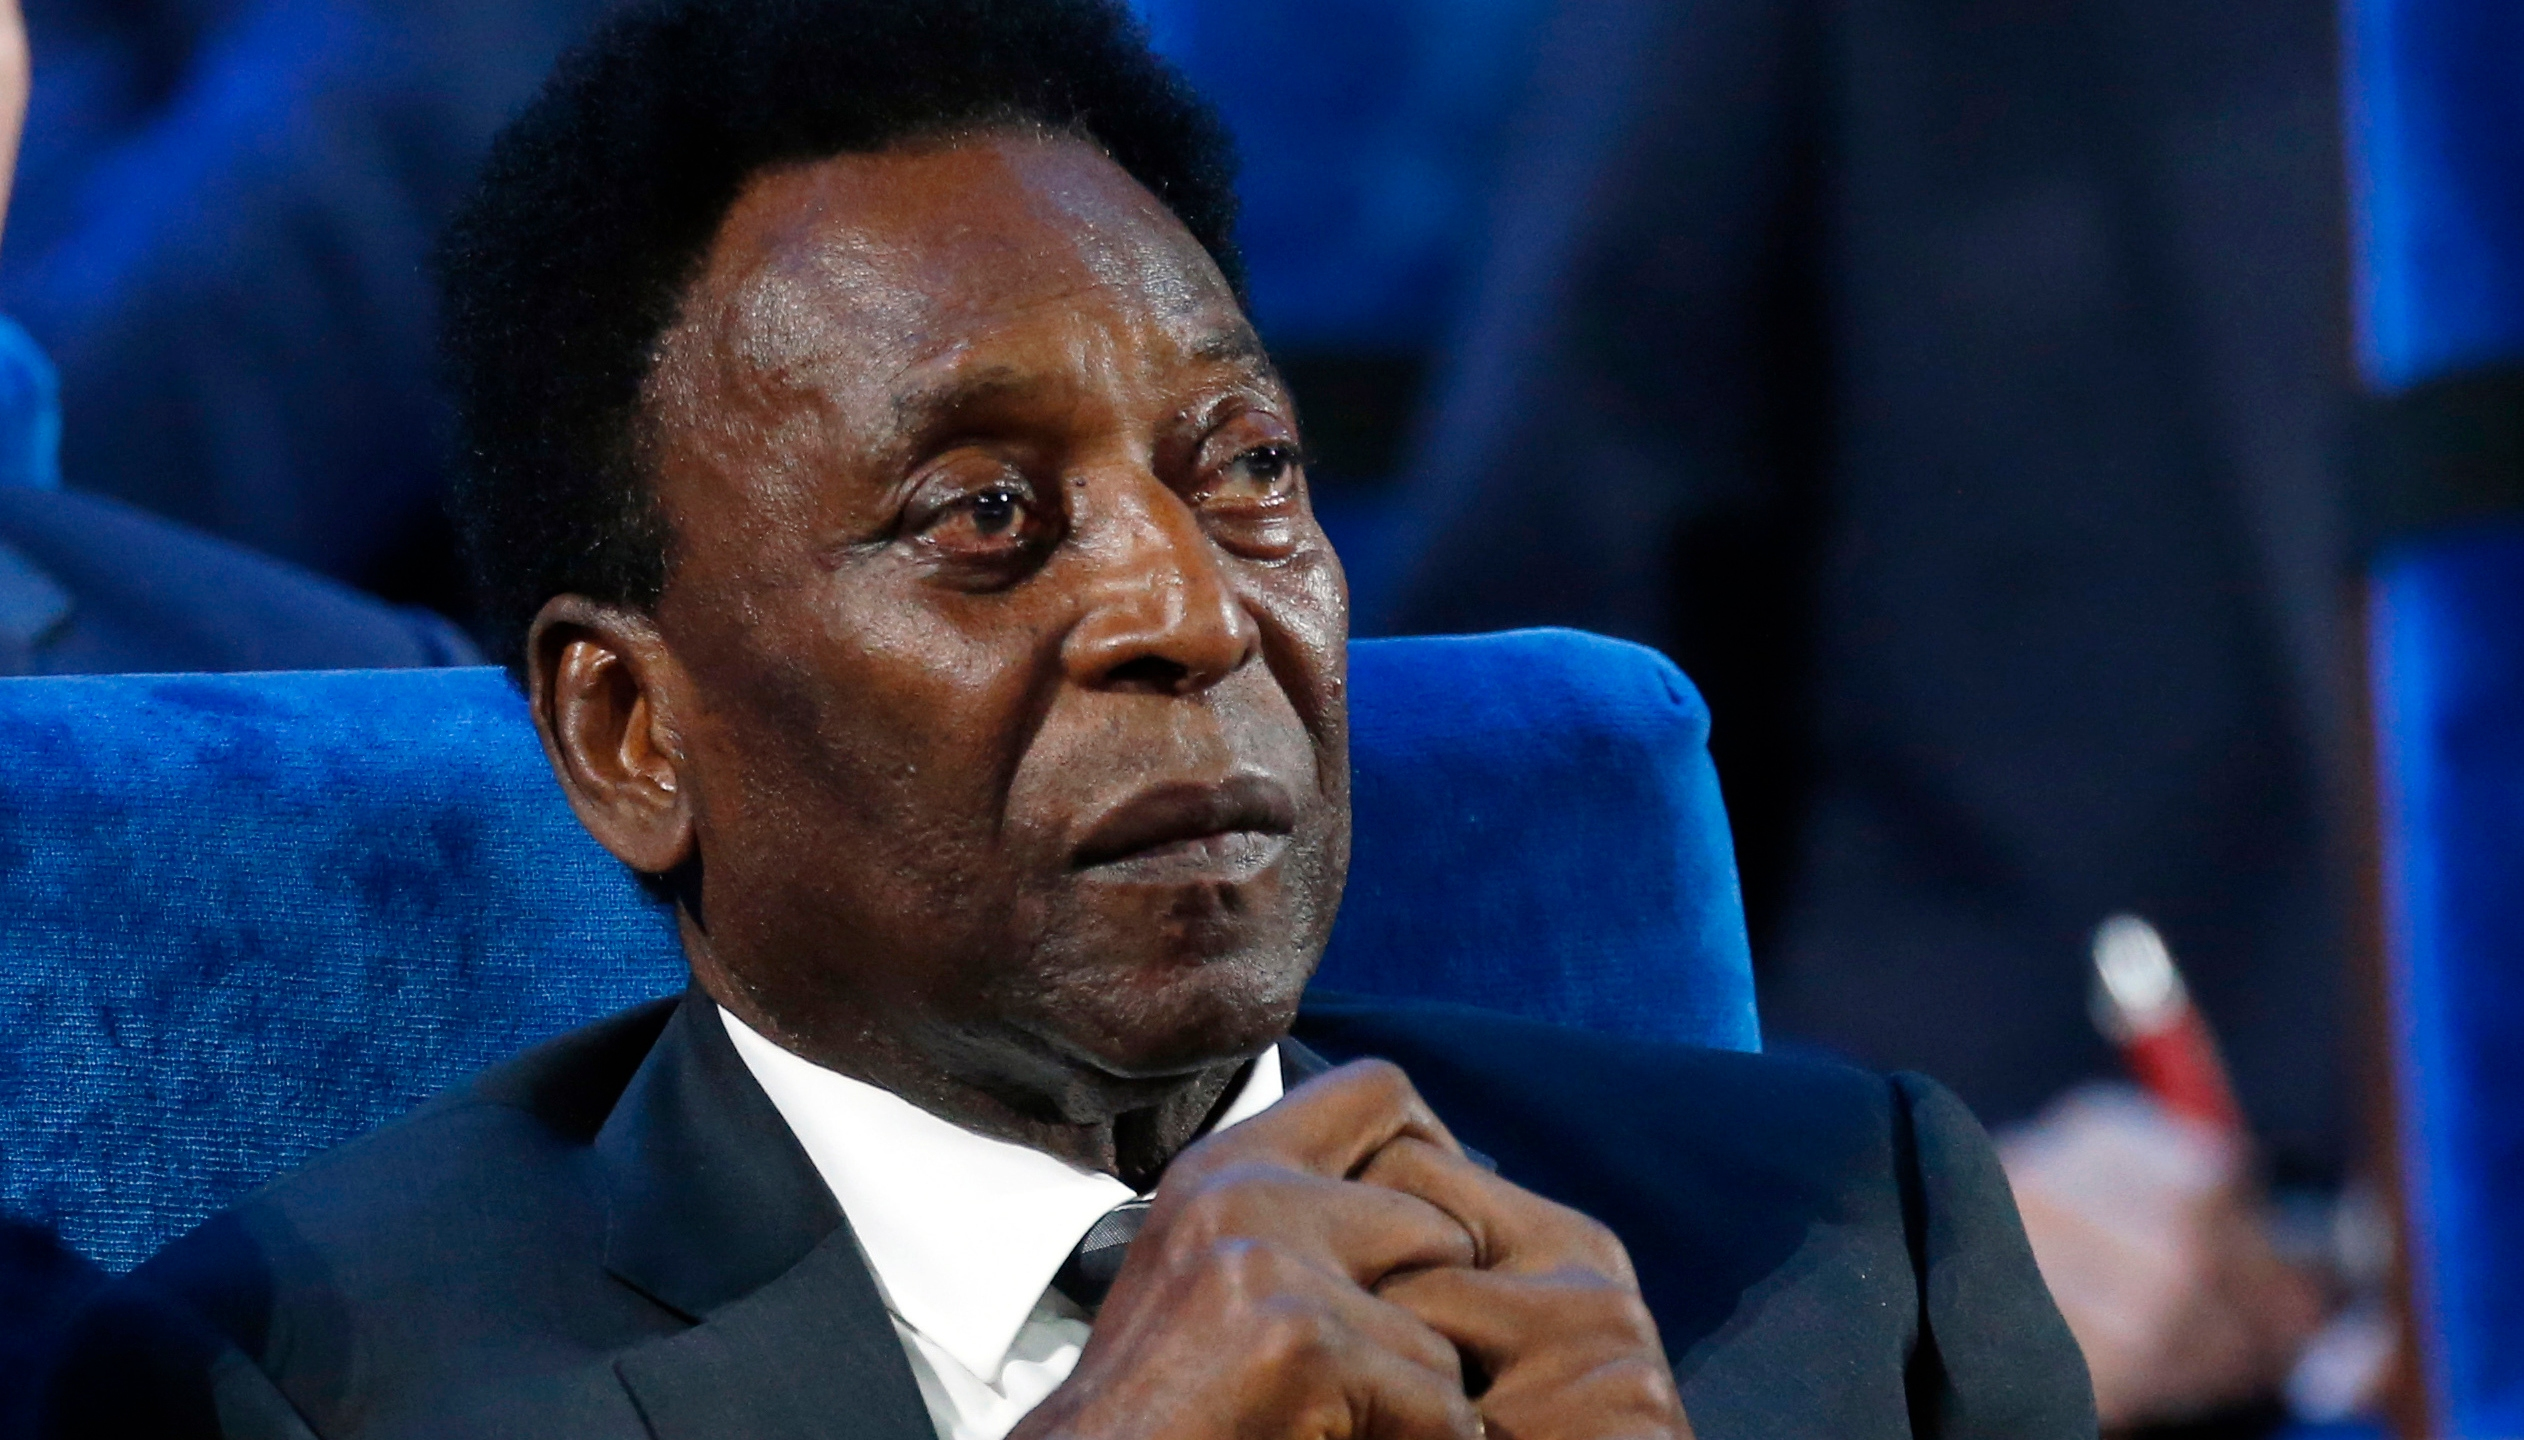 In this Dec. 1, 2017 file photo, Brazilian soccer legend Pele attends the 2018 soccer World Cup draw in the Kremlin in Moscow. On his social media accounts, Pele said on Monday, Sept. 6, 2021 that an apparent tumor on the right side of his colon had been removed in an operation. (AP Photo/Alexander Zemlianichenko)